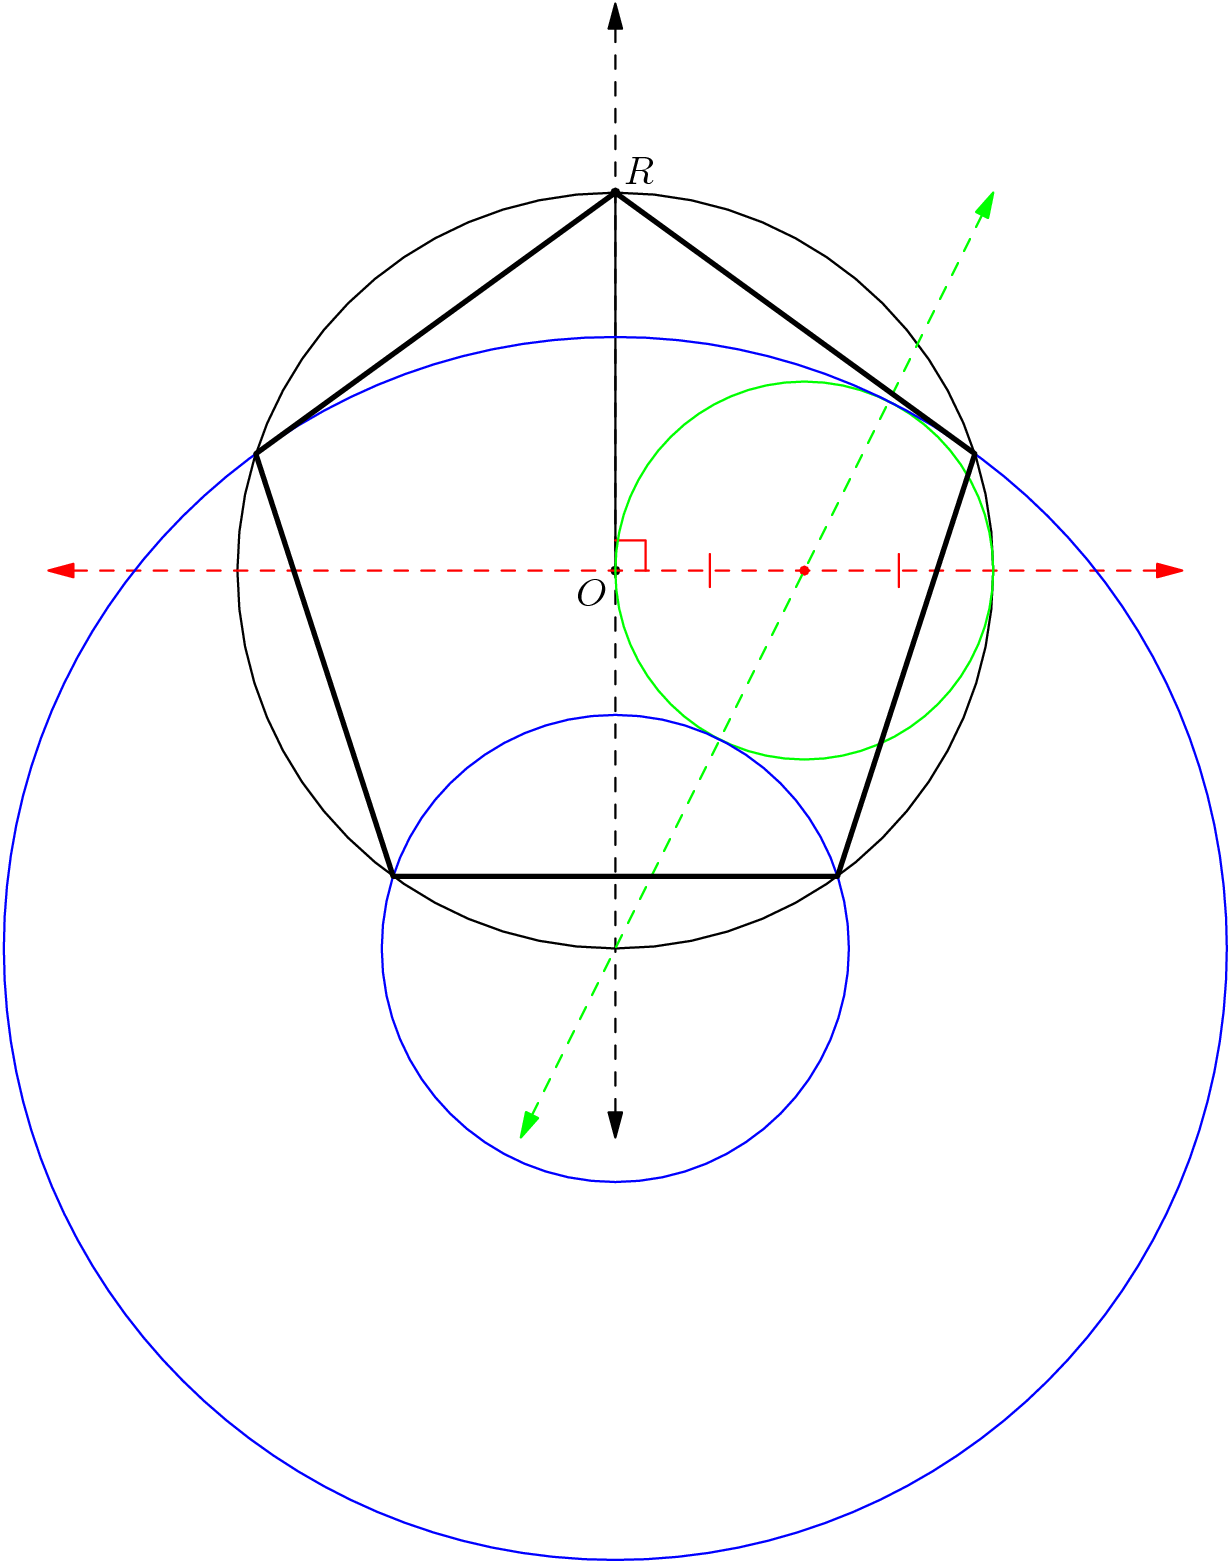 "[asy] import geometry; unitsize(2cm); pair O,R,M;  O = (0,0); dot(O); label(""$O$"",O,SW);  R = (0,2); dot(R); label(""$R$"",R,NE);  draw(circle(O,distance(O,R))); draw(O--R); draw(O-1.5(R-O)--O+1.5(R-O),dashed,Arrows);  draw(rotate(90,O)*(O-1.5(R-O)--O+1.5(R-O)),red+dashed,Arrows); markscalefactor=.02; draw(rightanglemark(R,O,rotate(-90,O)*R),red); draw(O--rotate(-90,O)*R,invisible,StickIntervalMarker(2,1,red)); M = (O+rotate(-90,O)*R)/2; dot(M,red);  draw(circle(M,distance(O,M)),green); draw(M+(M-rotate(180,O)*R)--rotate(180,O)*R+.5(rotate(180,O)*R-M),green+dashed,Arrows);  draw(circle(rotate(180,O)*R,distance(M,rotate(180,O)*R)-distance(O,M)),blue); draw(circle(rotate(180,O)*R,distance(M,rotate(180,O)*R)+distance(O,M)),blue);  draw(R --intersectionpoint(R..rotate(90,O)*R..rotate(180,O)*R,circle(rotate(180,O)*R,distance(M,rotate(180,O)*R)+distance(O,M))) --intersectionpoint(R..rotate(90,O)*R..rotate(180,O)*R,circle(rotate(180,O)*R,distance(M,rotate(180,O)*R)-distance(O,M))) --intersectionpoint(R..rotate(-90,O)*R..rotate(180,O)*R,circle(rotate(180,O)*R,distance(M,rotate(180,O)*R)-distance(O,M))) --intersectionpoint(R..rotate(-90,O)*R..rotate(180,O)*R,circle(rotate(180,O)*R,distance(M,rotate(180,O)*R)+distance(O,M))) --cycle,linewidth(1.5)); [/asy]"